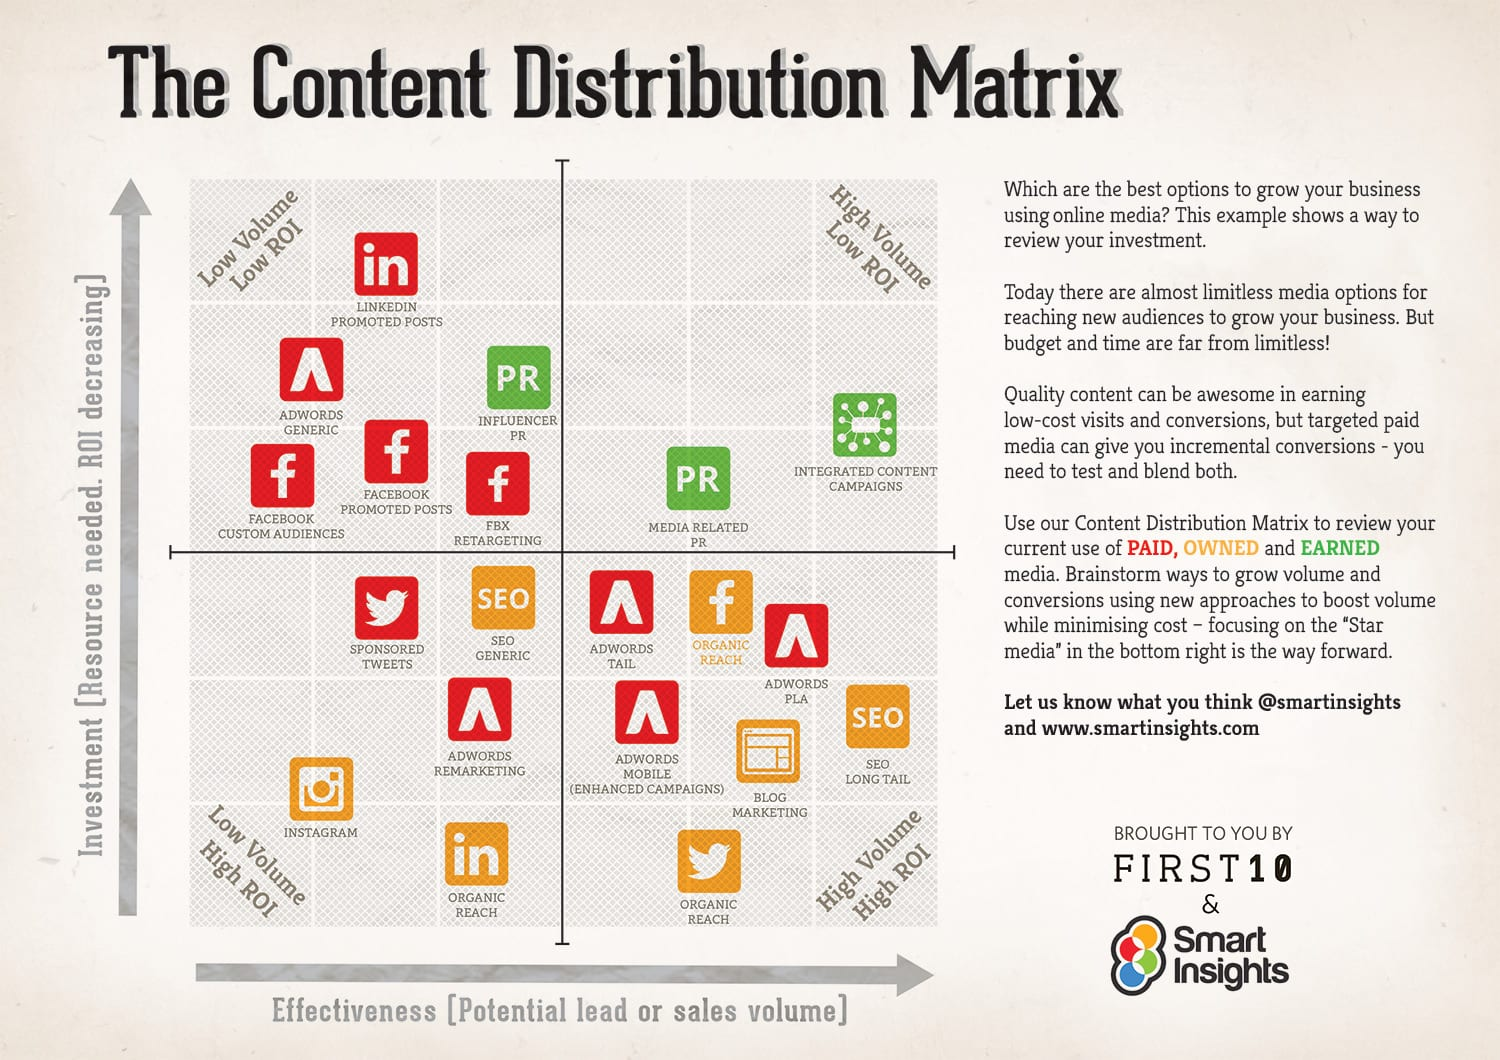 The Content Distribution Matrix